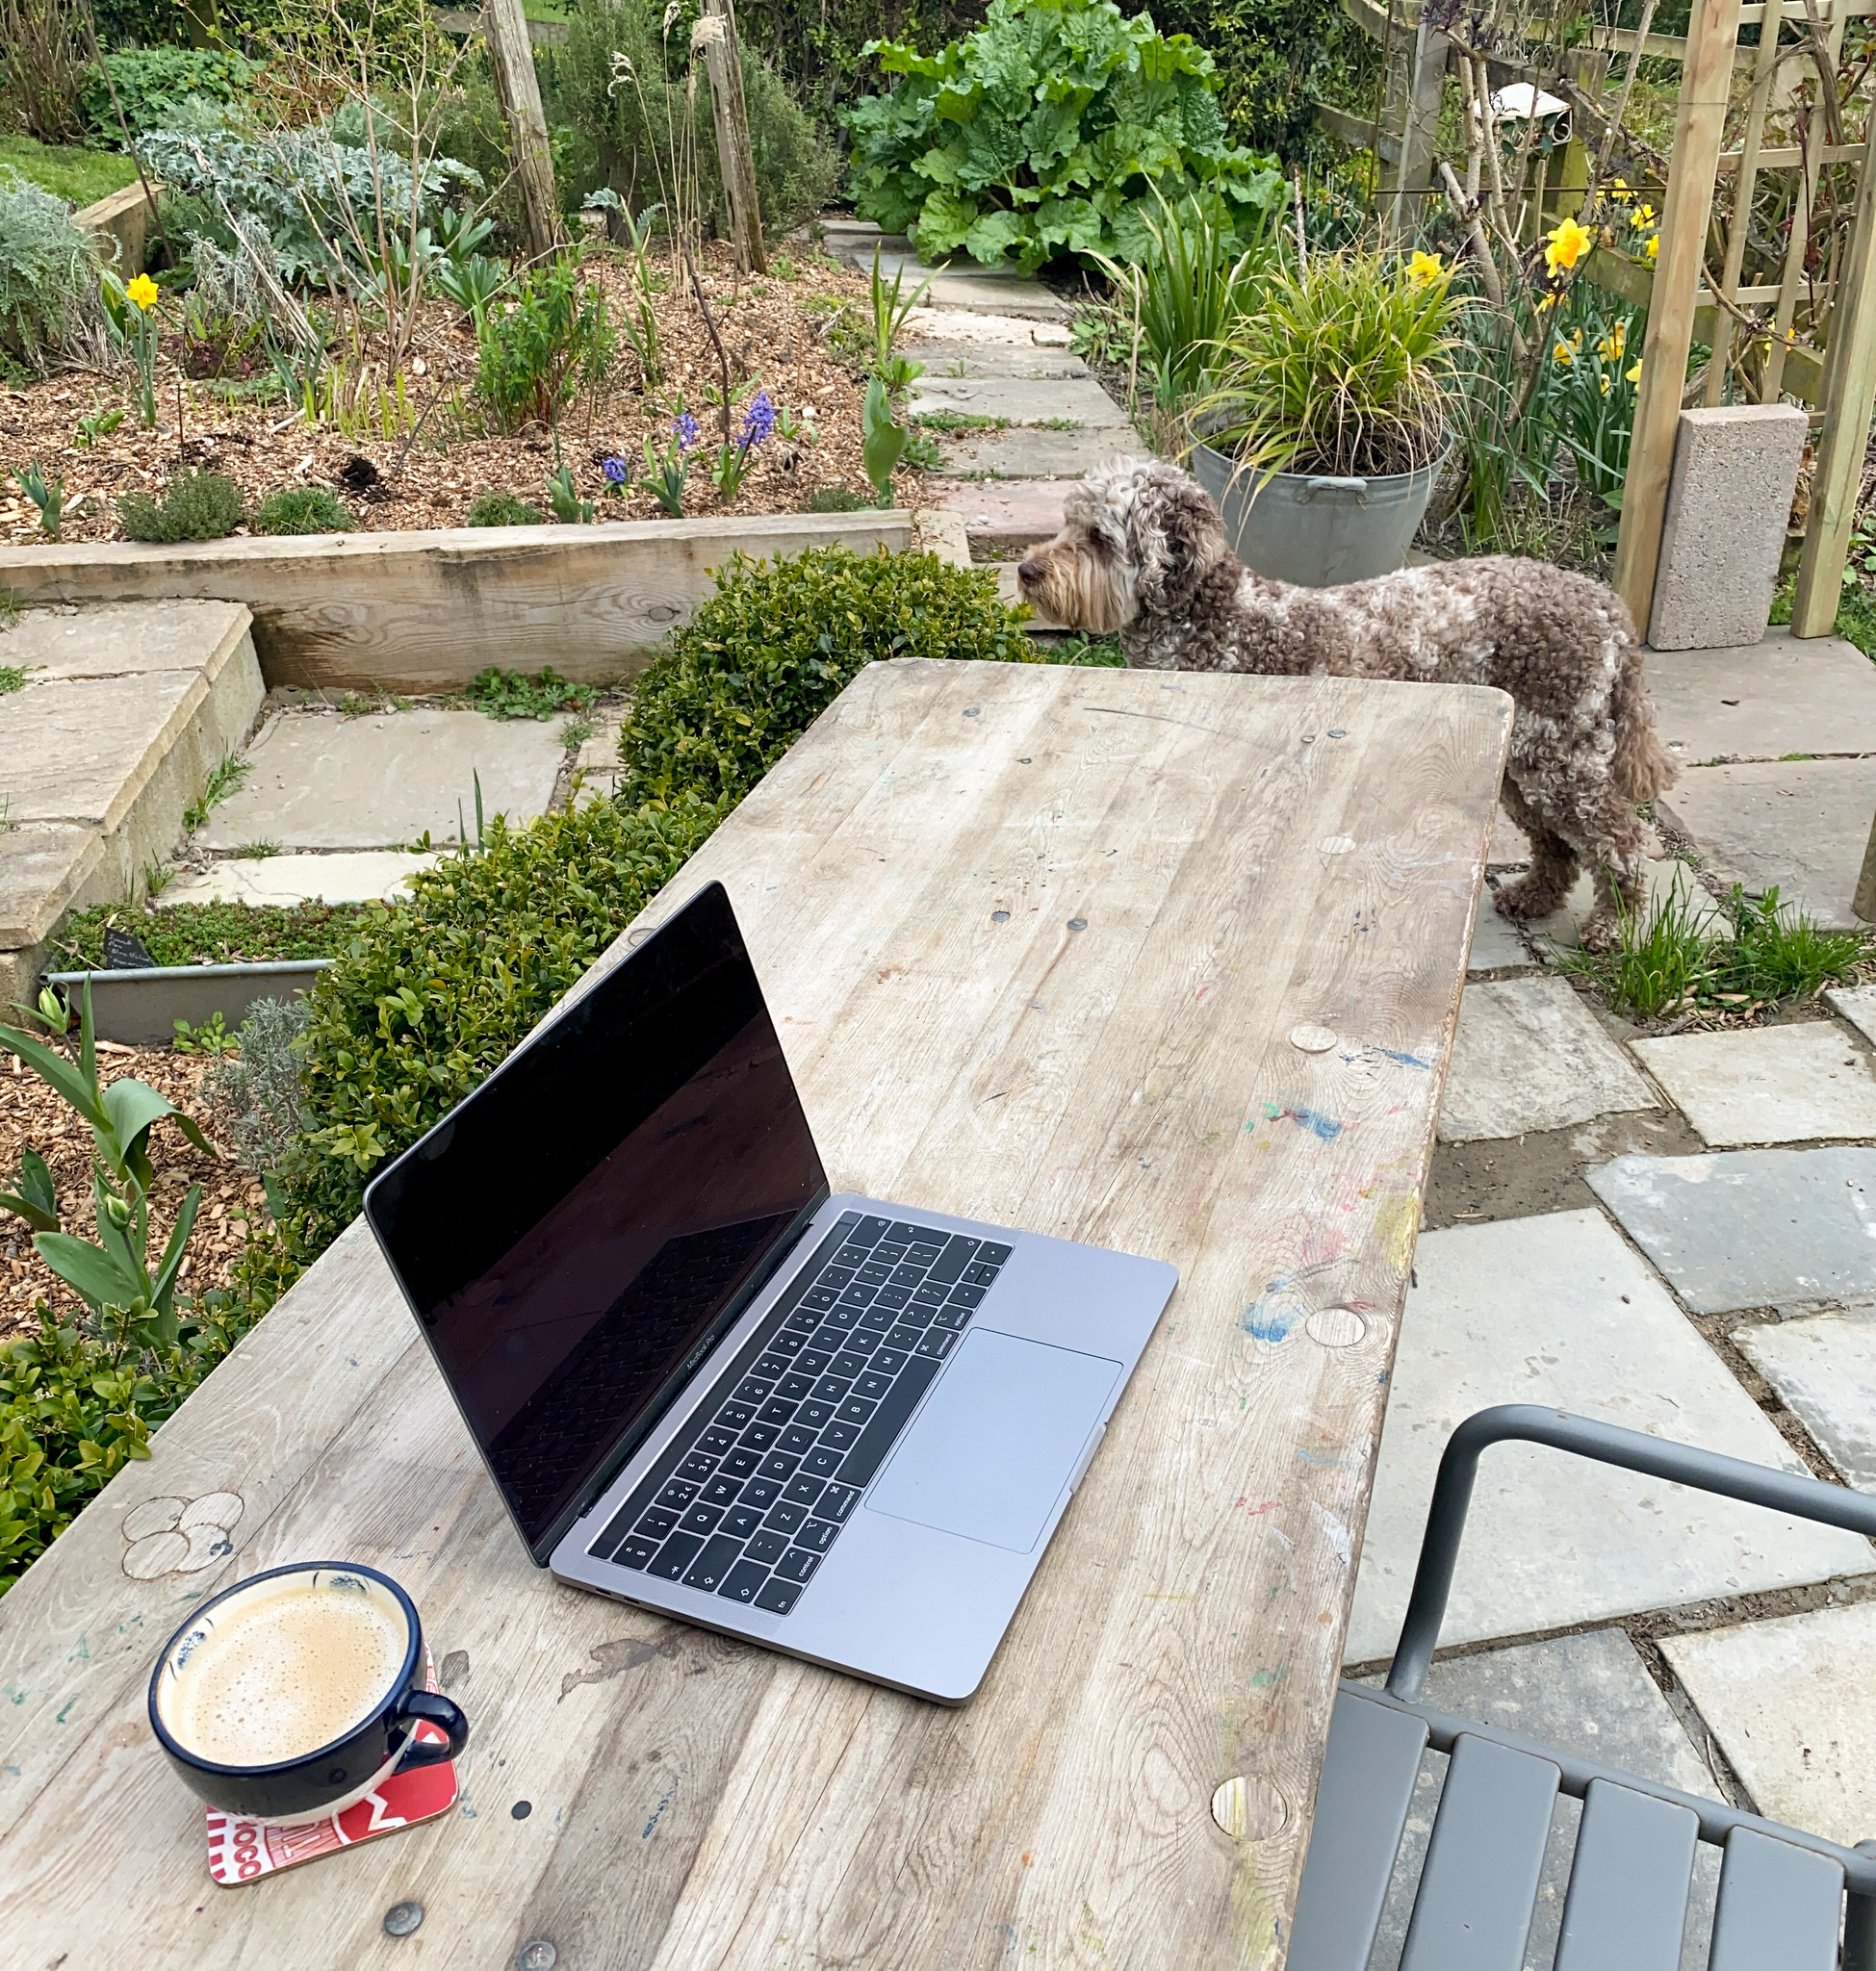 Working from the garden